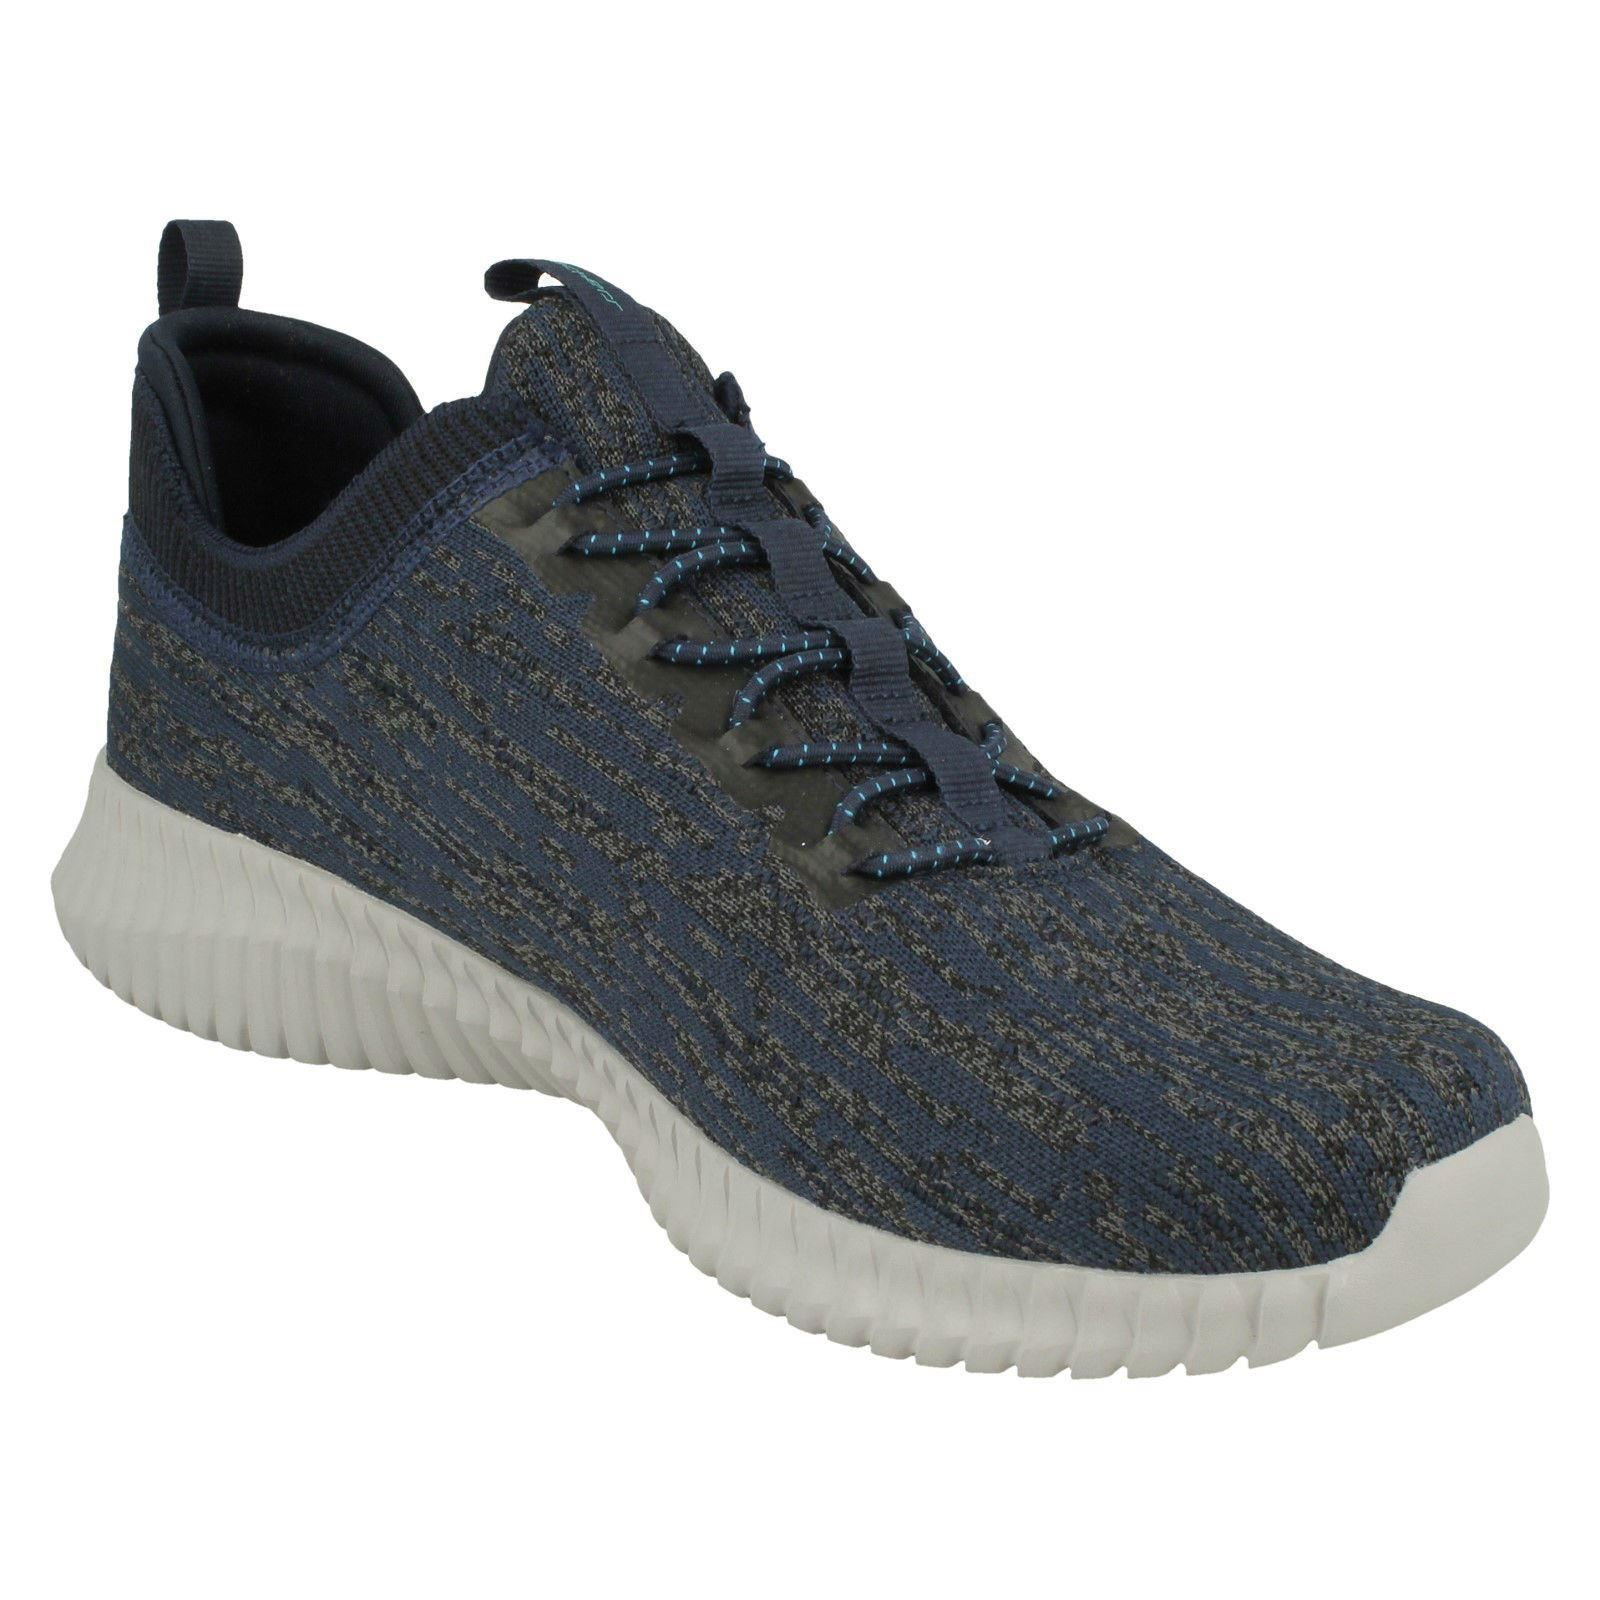 Mens Skechers Casual Memory Foam Trainers * Hartnell * 52642